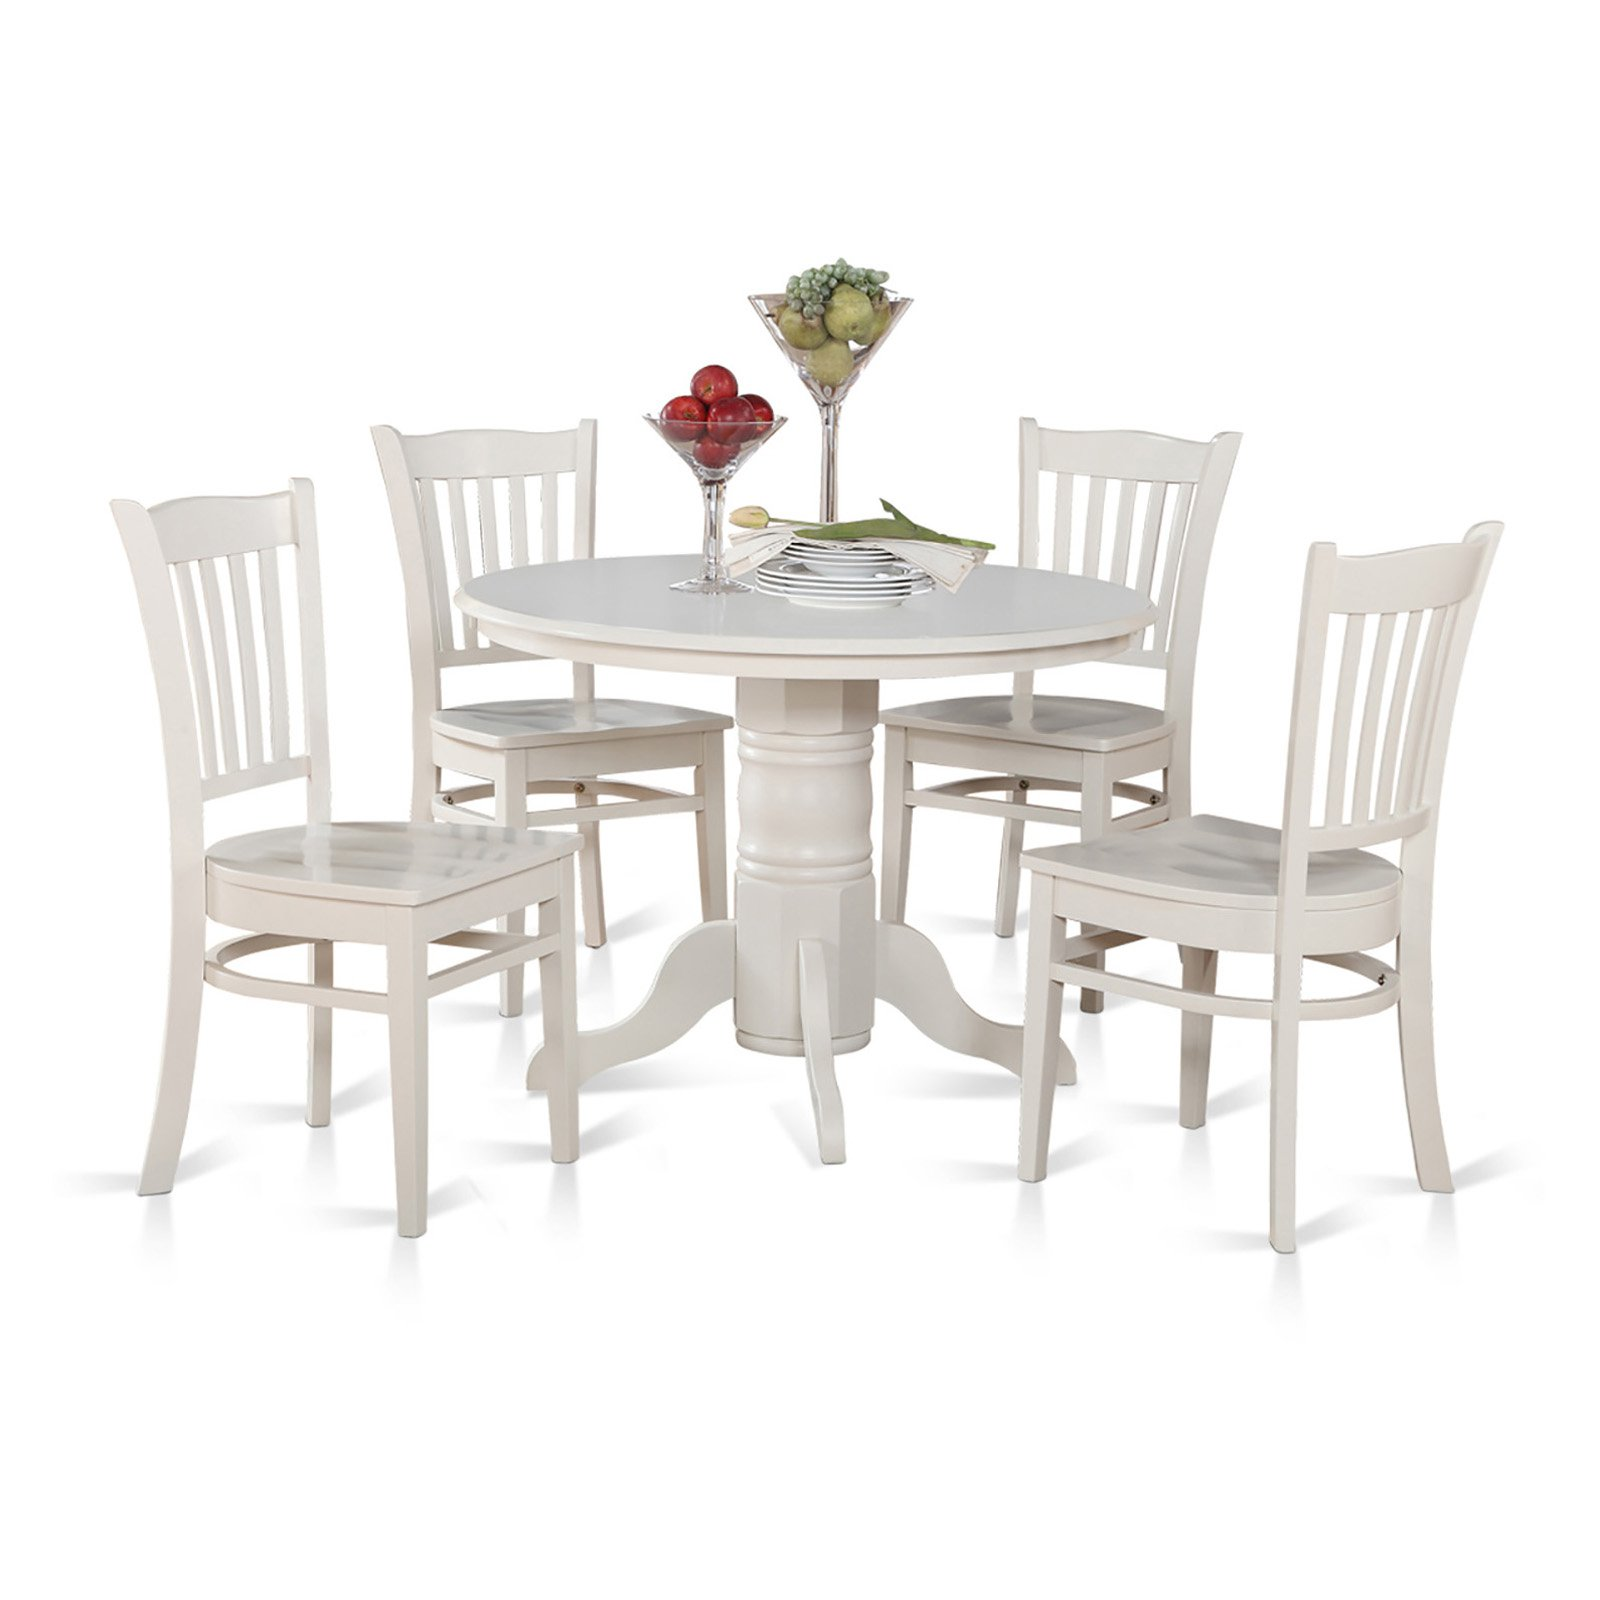 East West Furniture Shelton 5 Piece Comb Back Dining Table Set